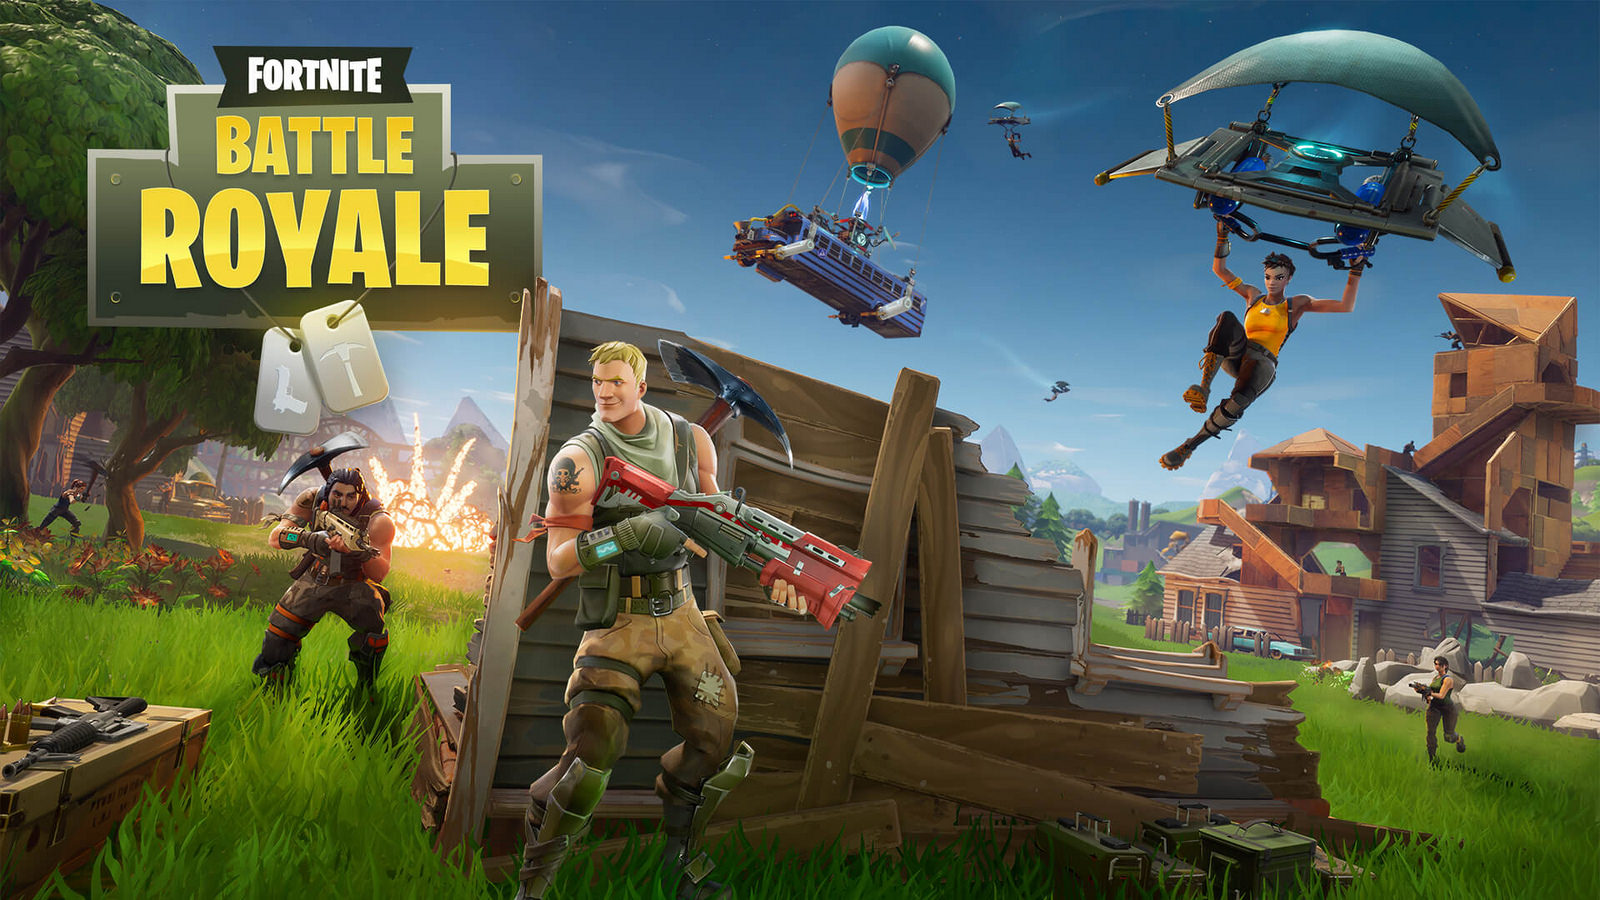 Fortnite is coming with a NIntendo Switch bundle